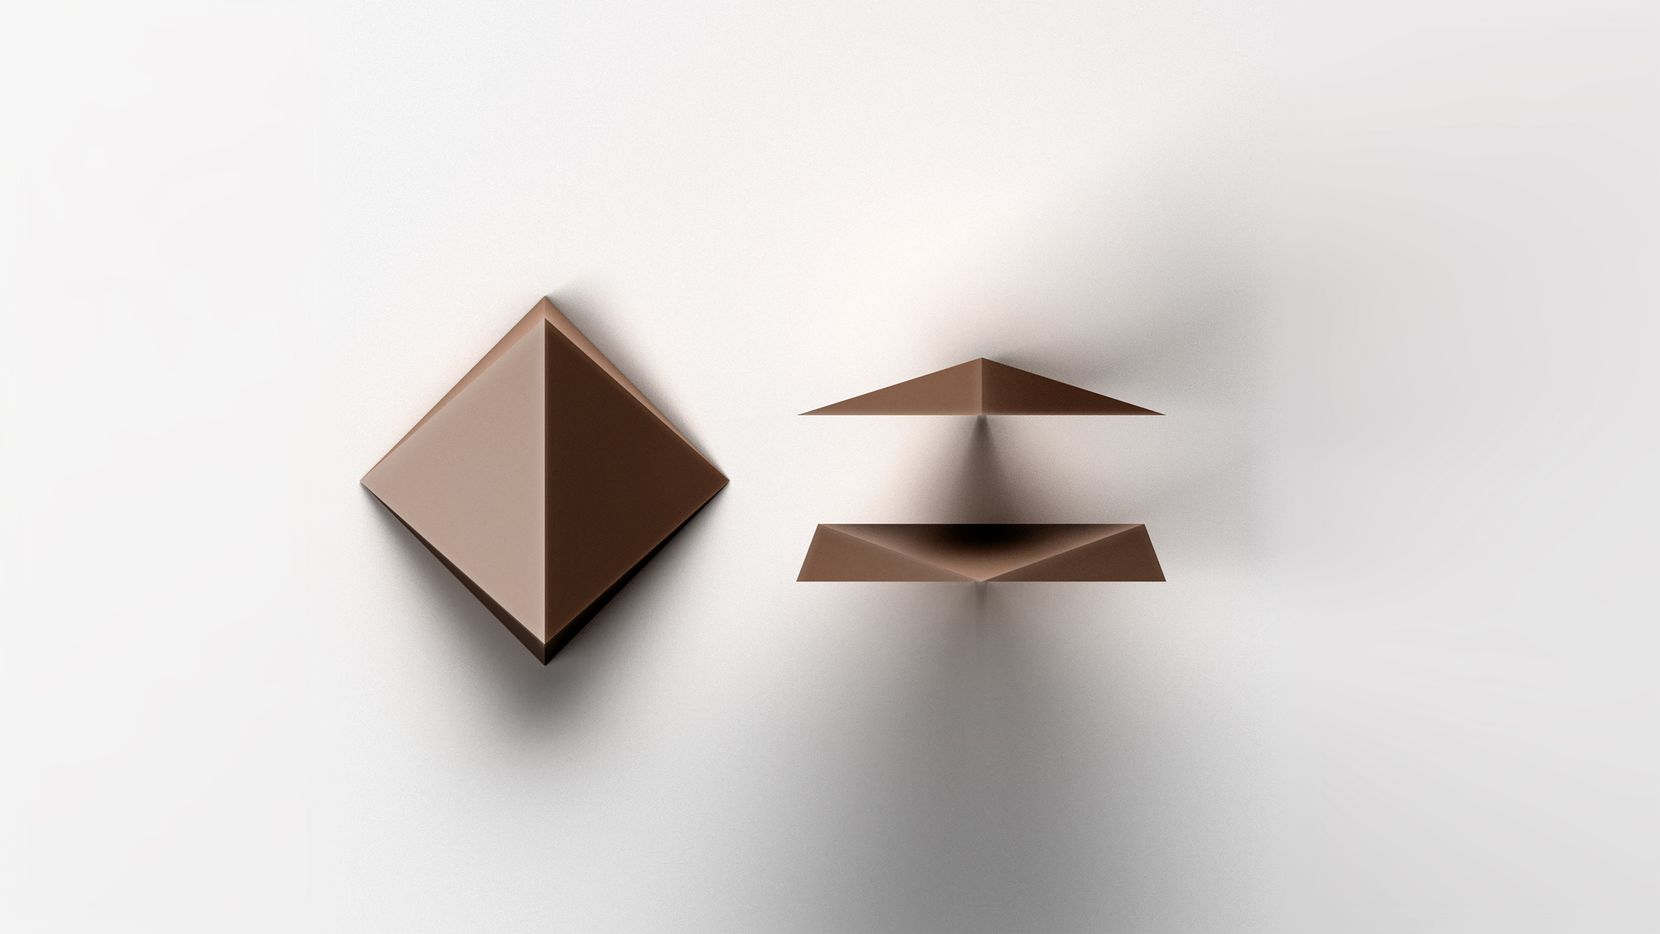 Tesla engineer Remy Labesque's redesign of the chocolate chip for artisanal Dandelion Chocolate is a square, faceted pyramid, kind of like a flattened diamond. Two edges are thick, and two exceedingly thin, for even more textural pleasure.